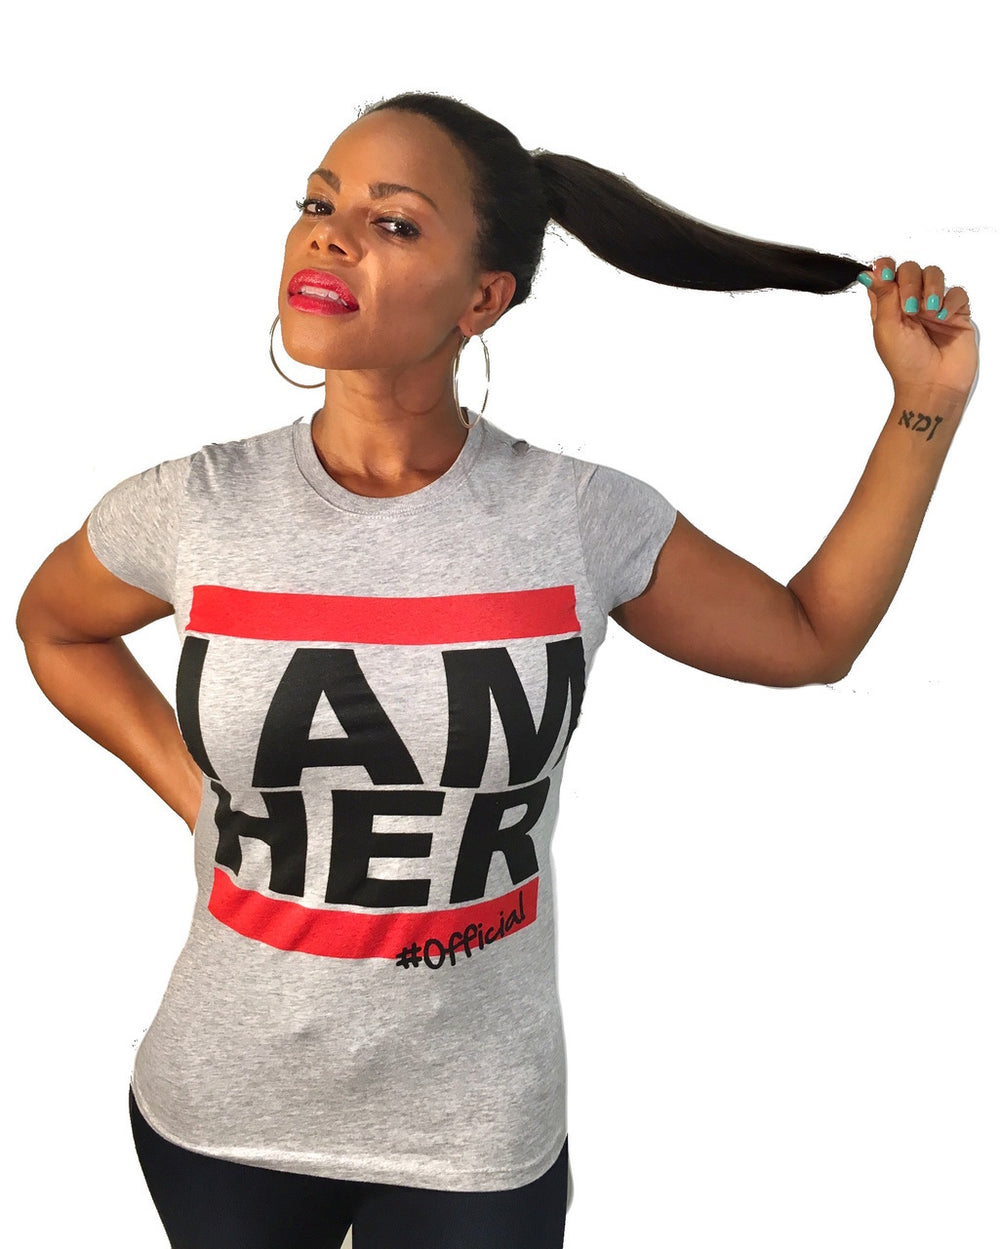 Female wearing gray Women's Graphic Tee with saying, I AM HER. Women's Tee for the girl who is unapologetically feminist and believes in girl power.